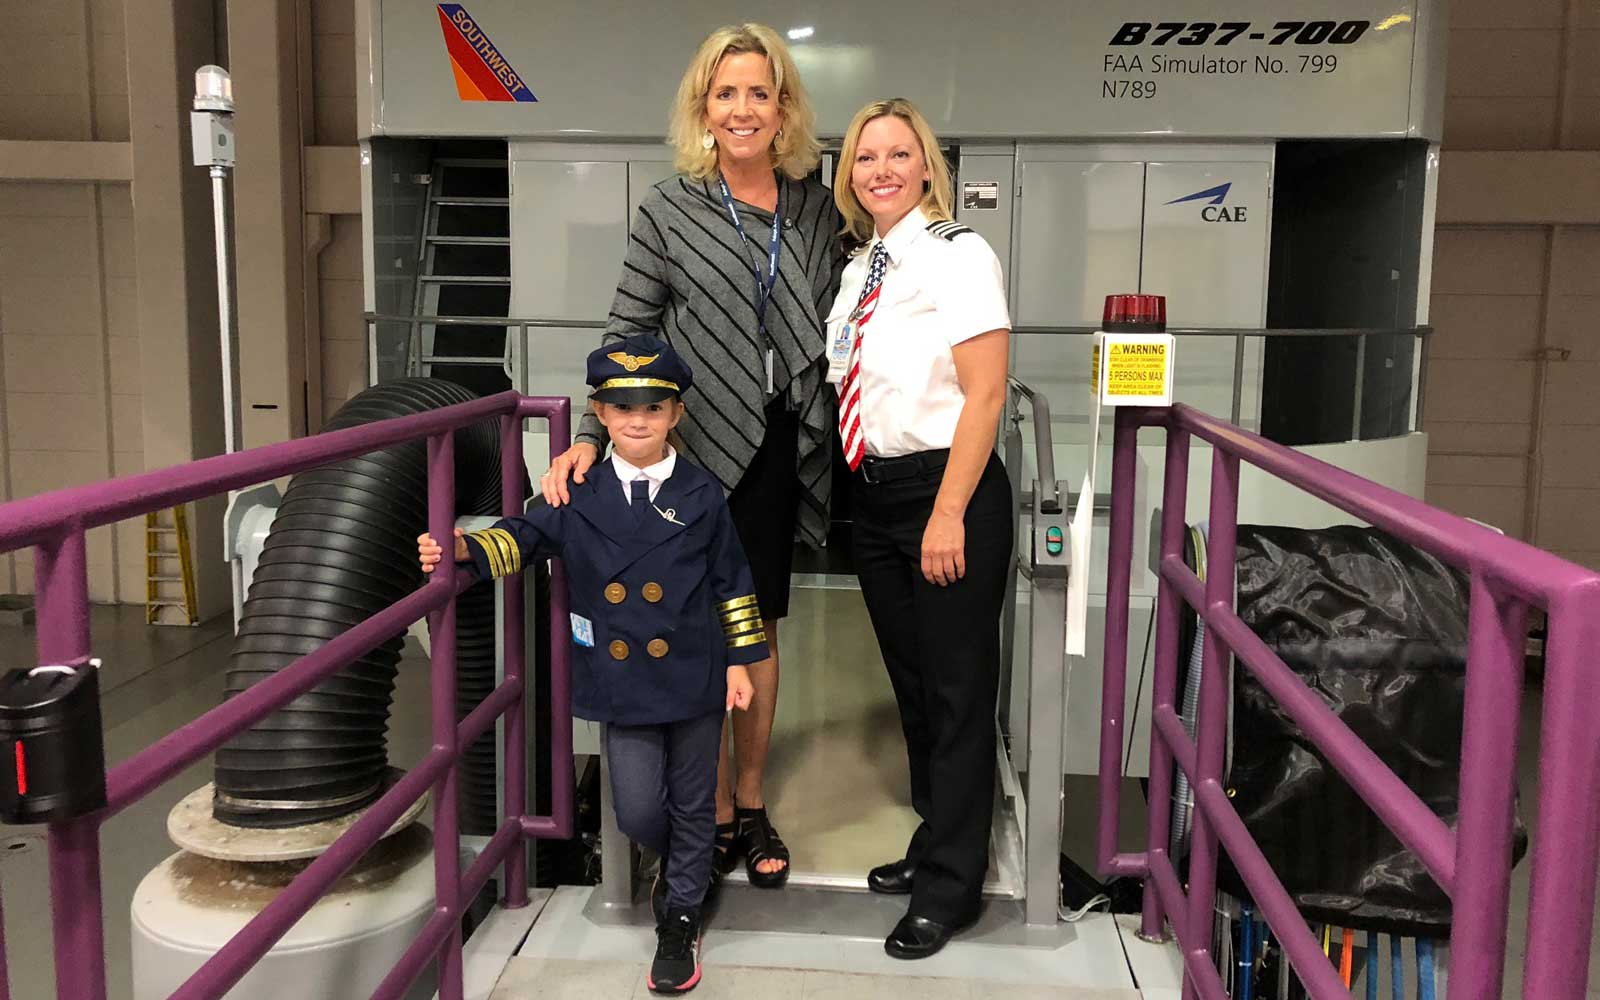 This 6-year-old Girl Wants to Become a Pilot for Southwest Airlines